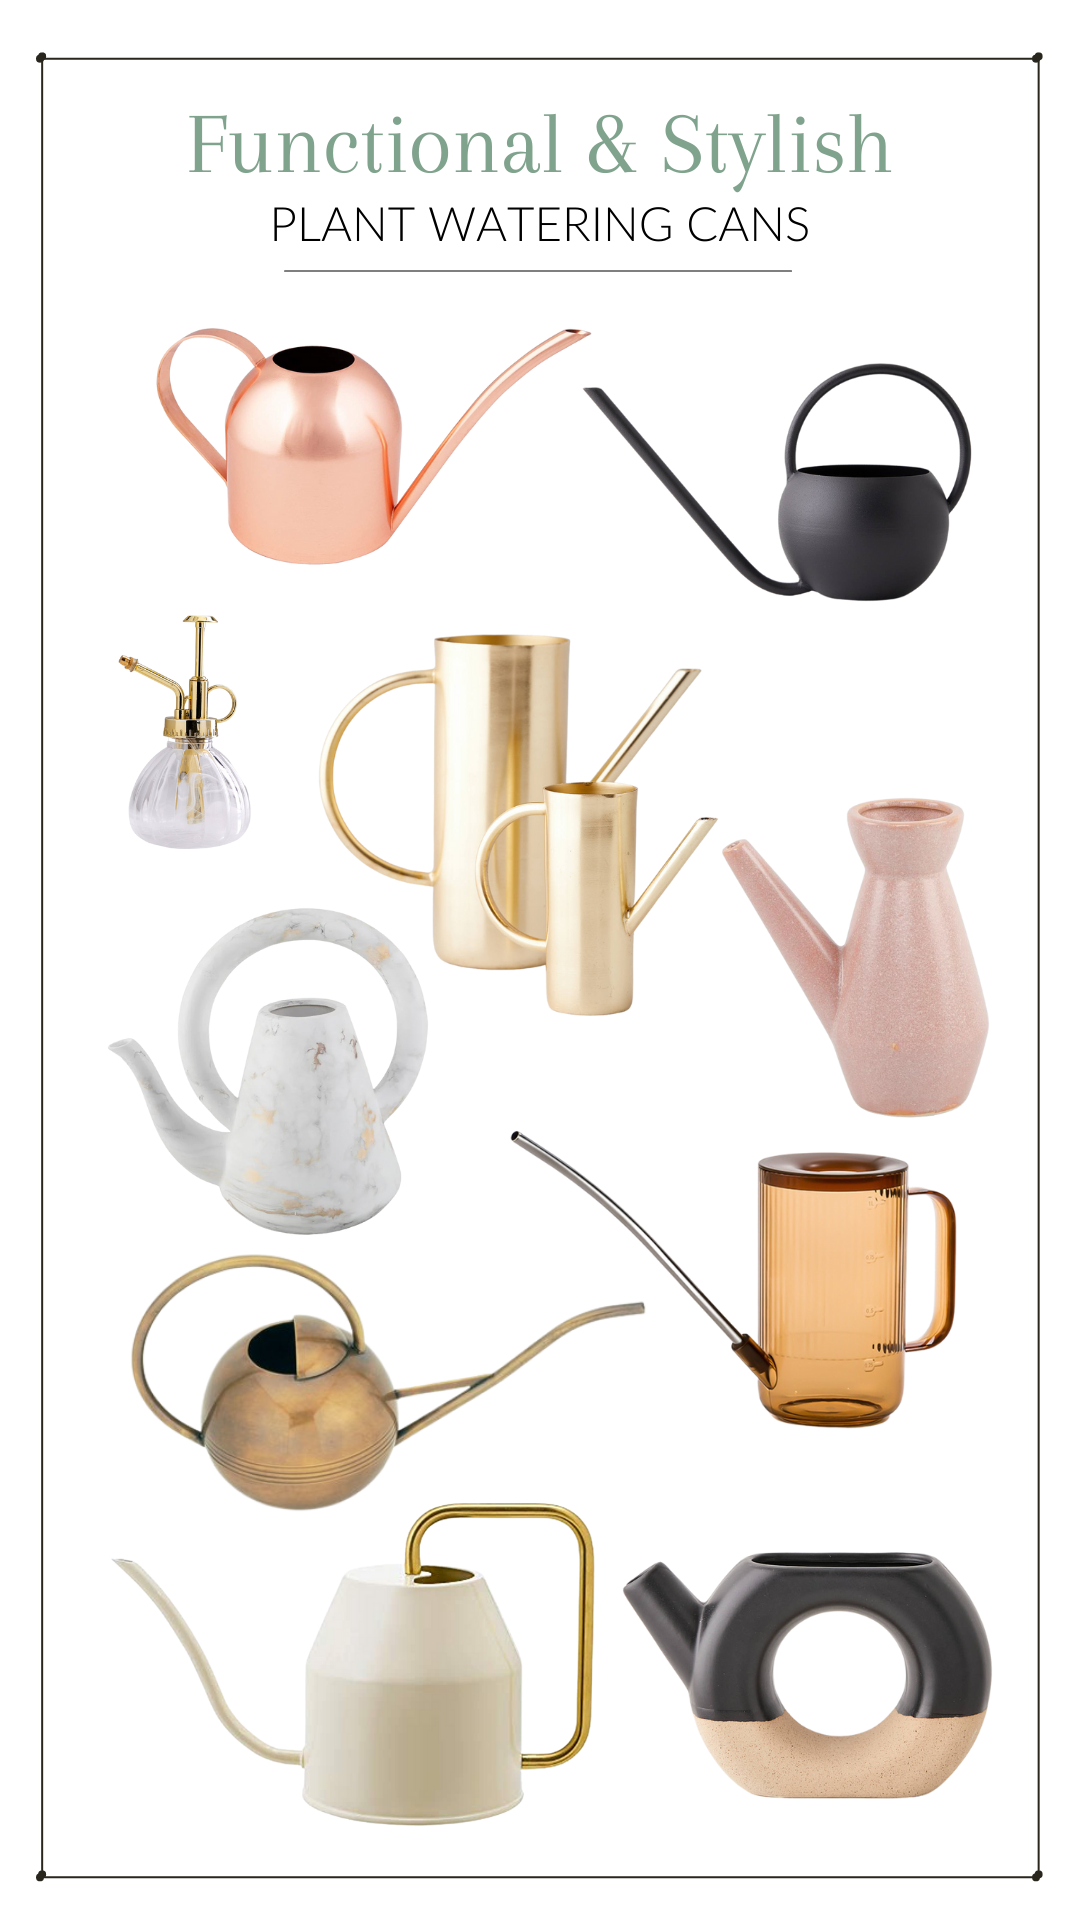 Stylish watering cans